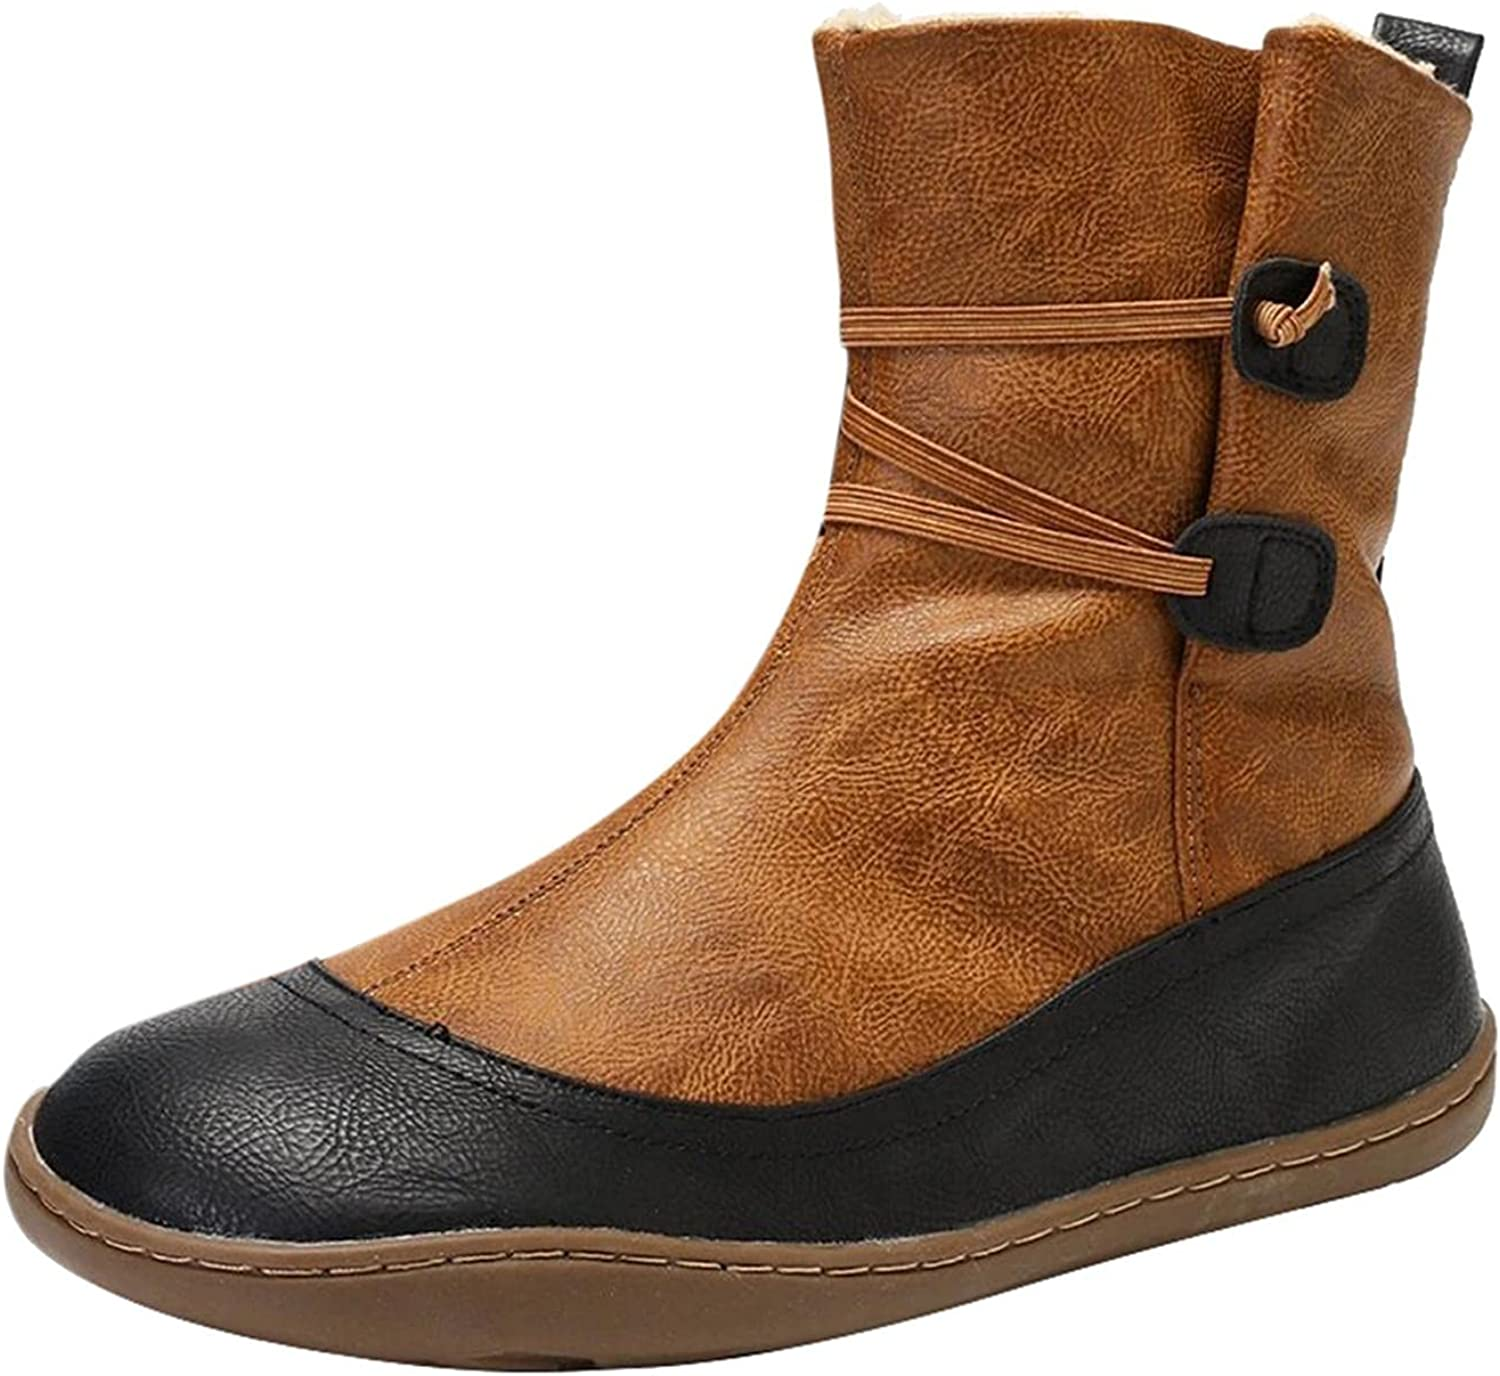 Zieglen Women's Winter Boots, Women's Boots with Leather Round Toe Ankle Booties Western Boots Snow Boots Motorcycle Boots